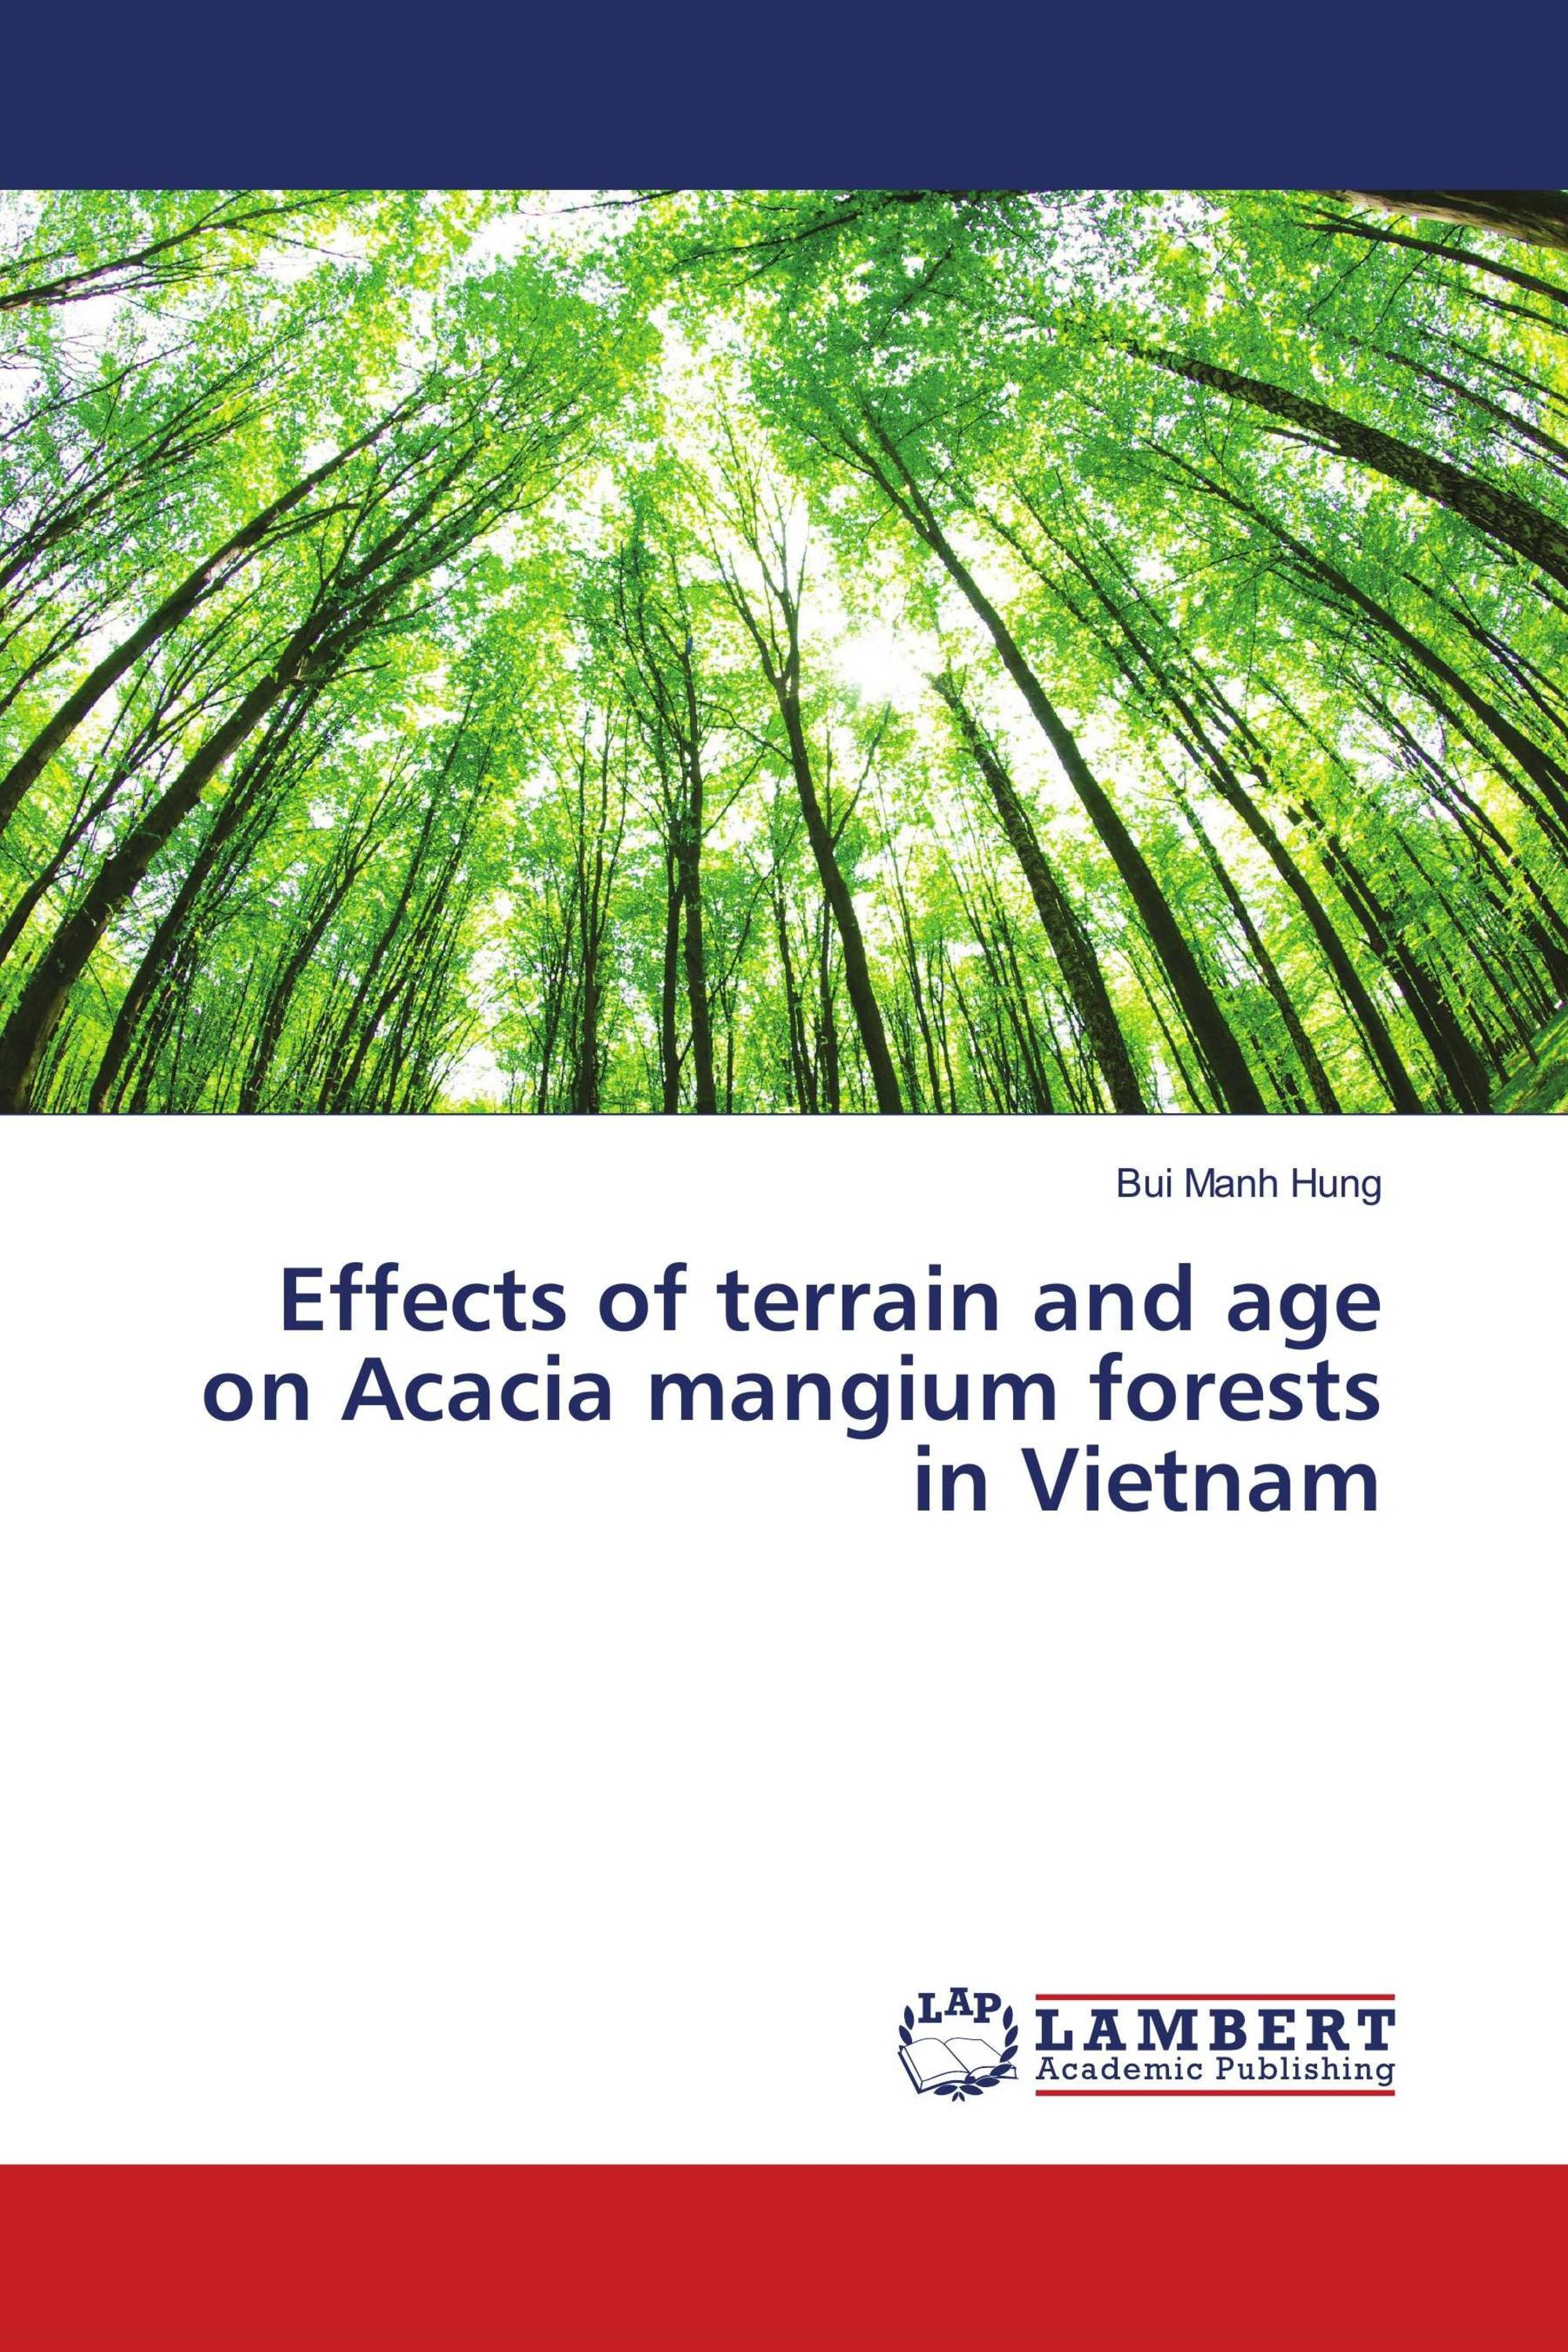 Effects of terrain and age on Acacia mangium forests in Vietnam